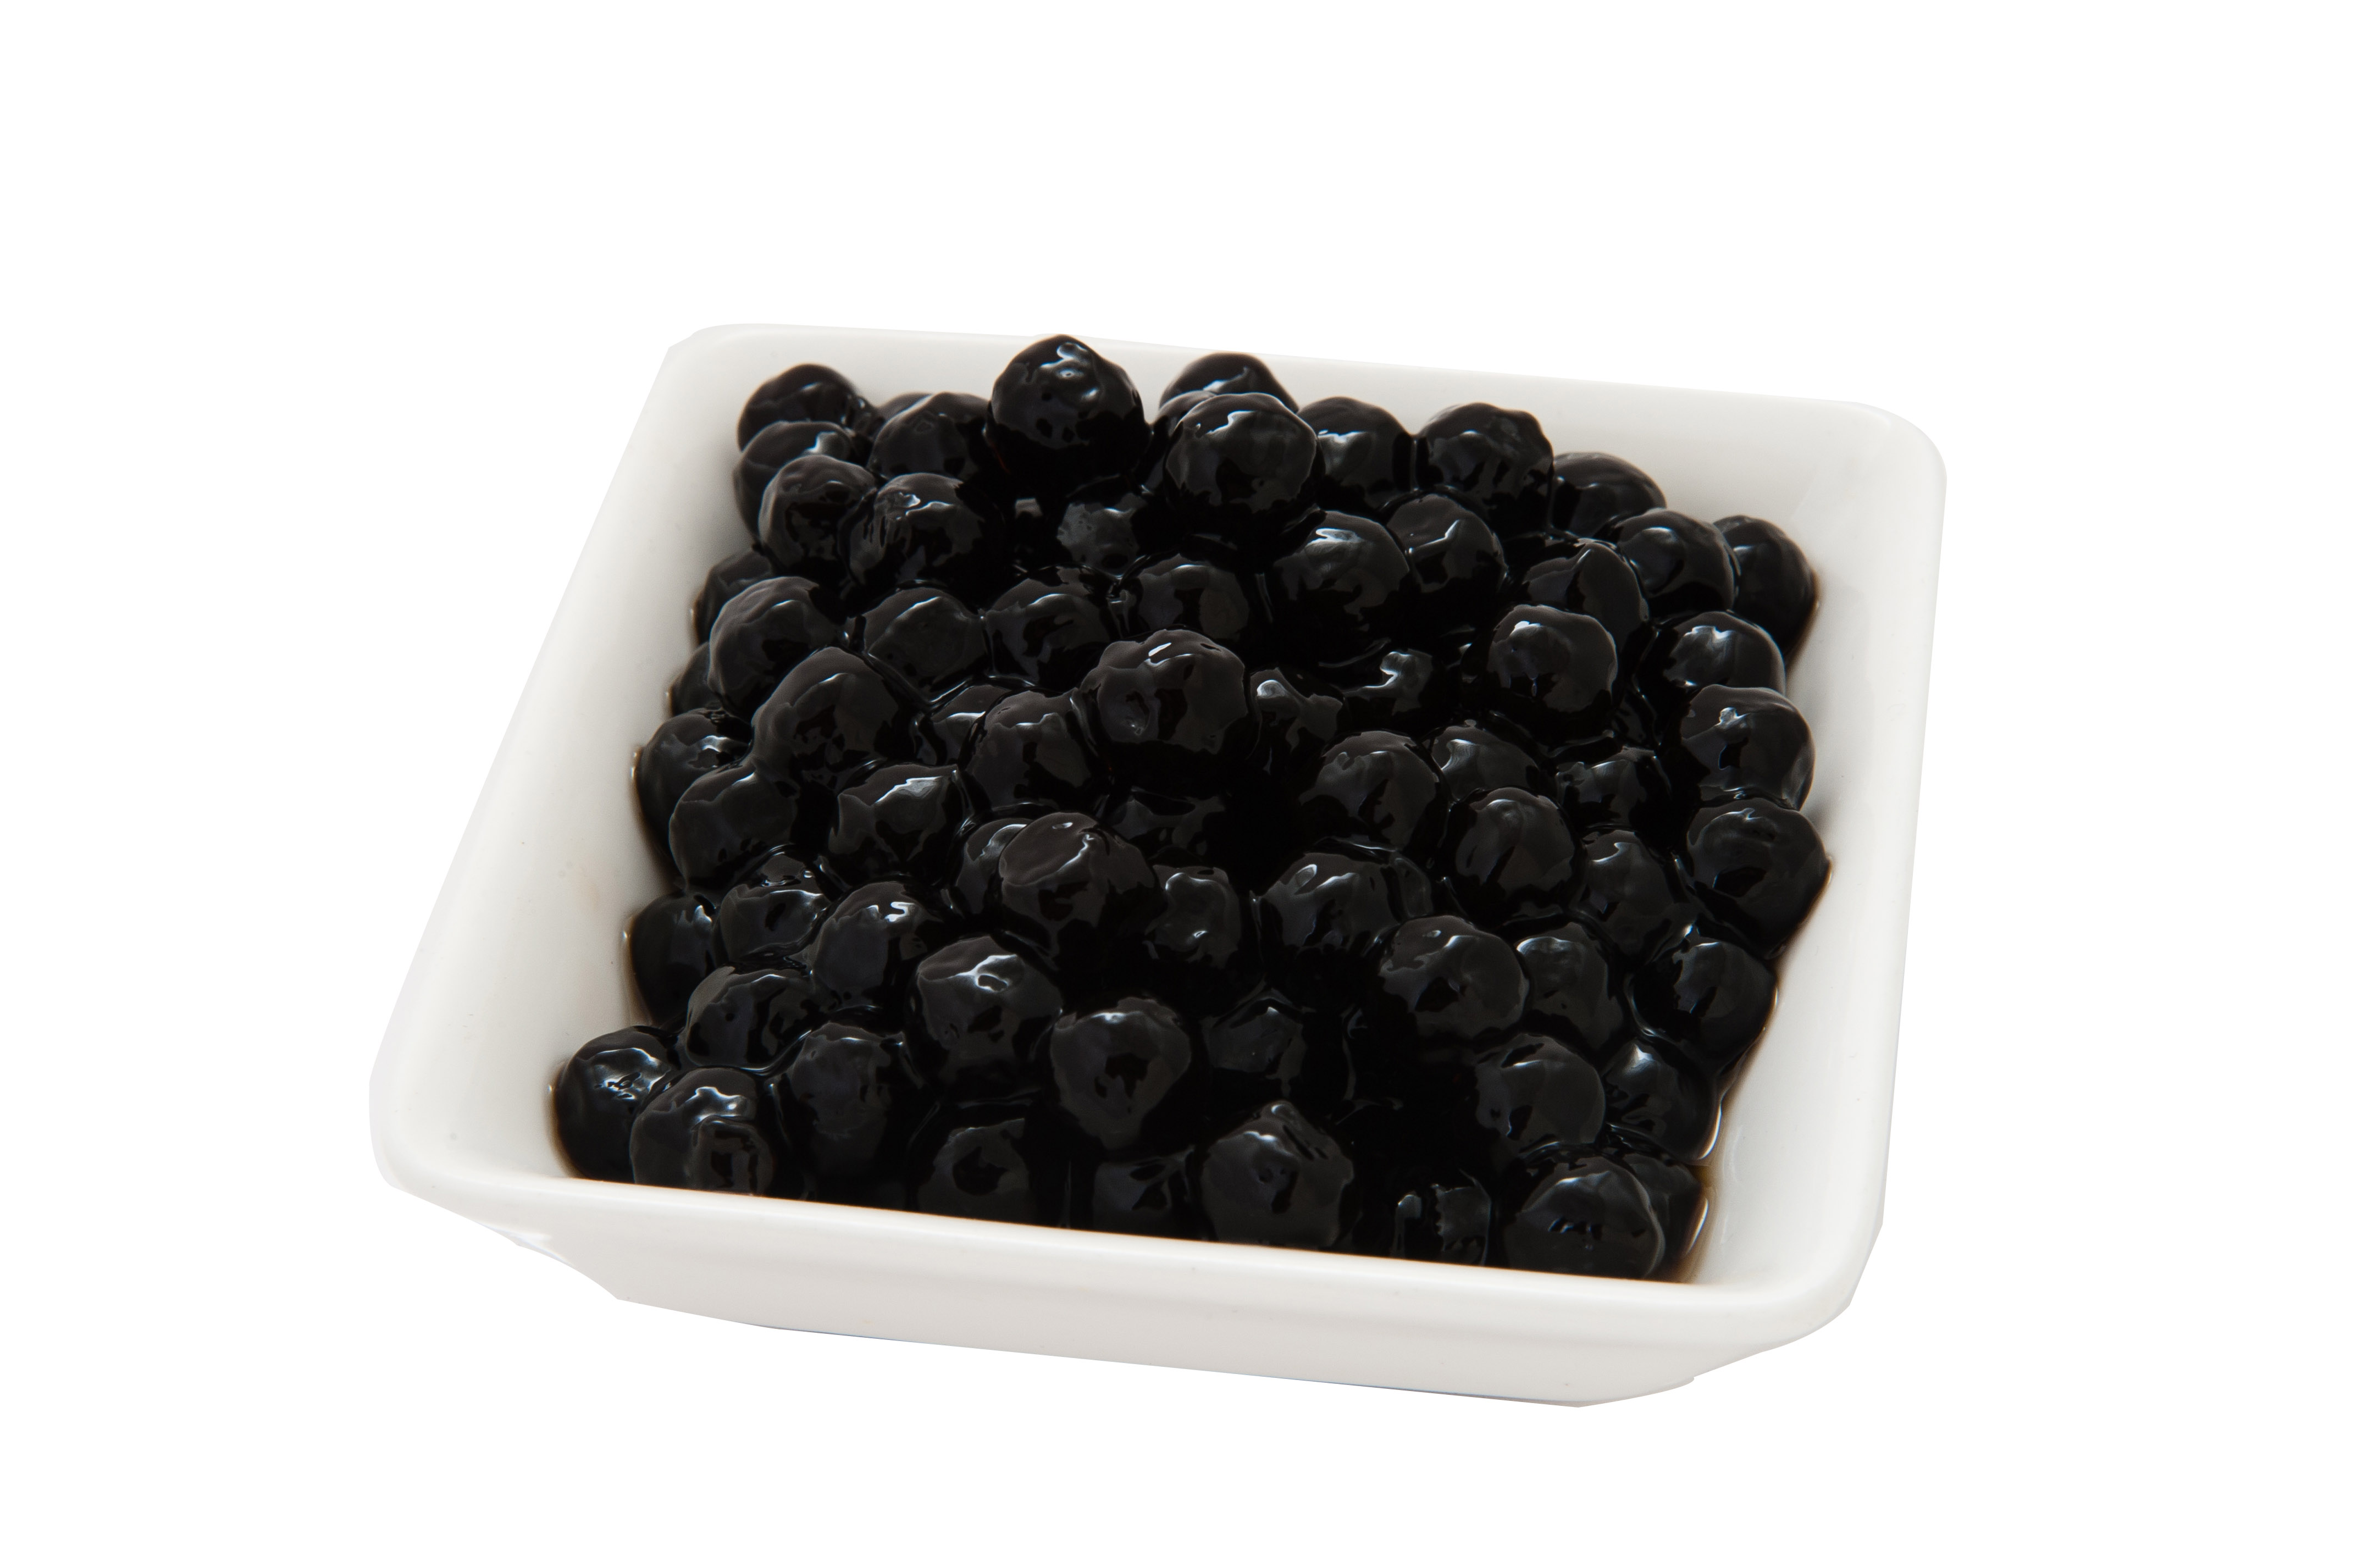 Taiwan Best Selling 3kg 25 TachunGhO tapioca pearl for